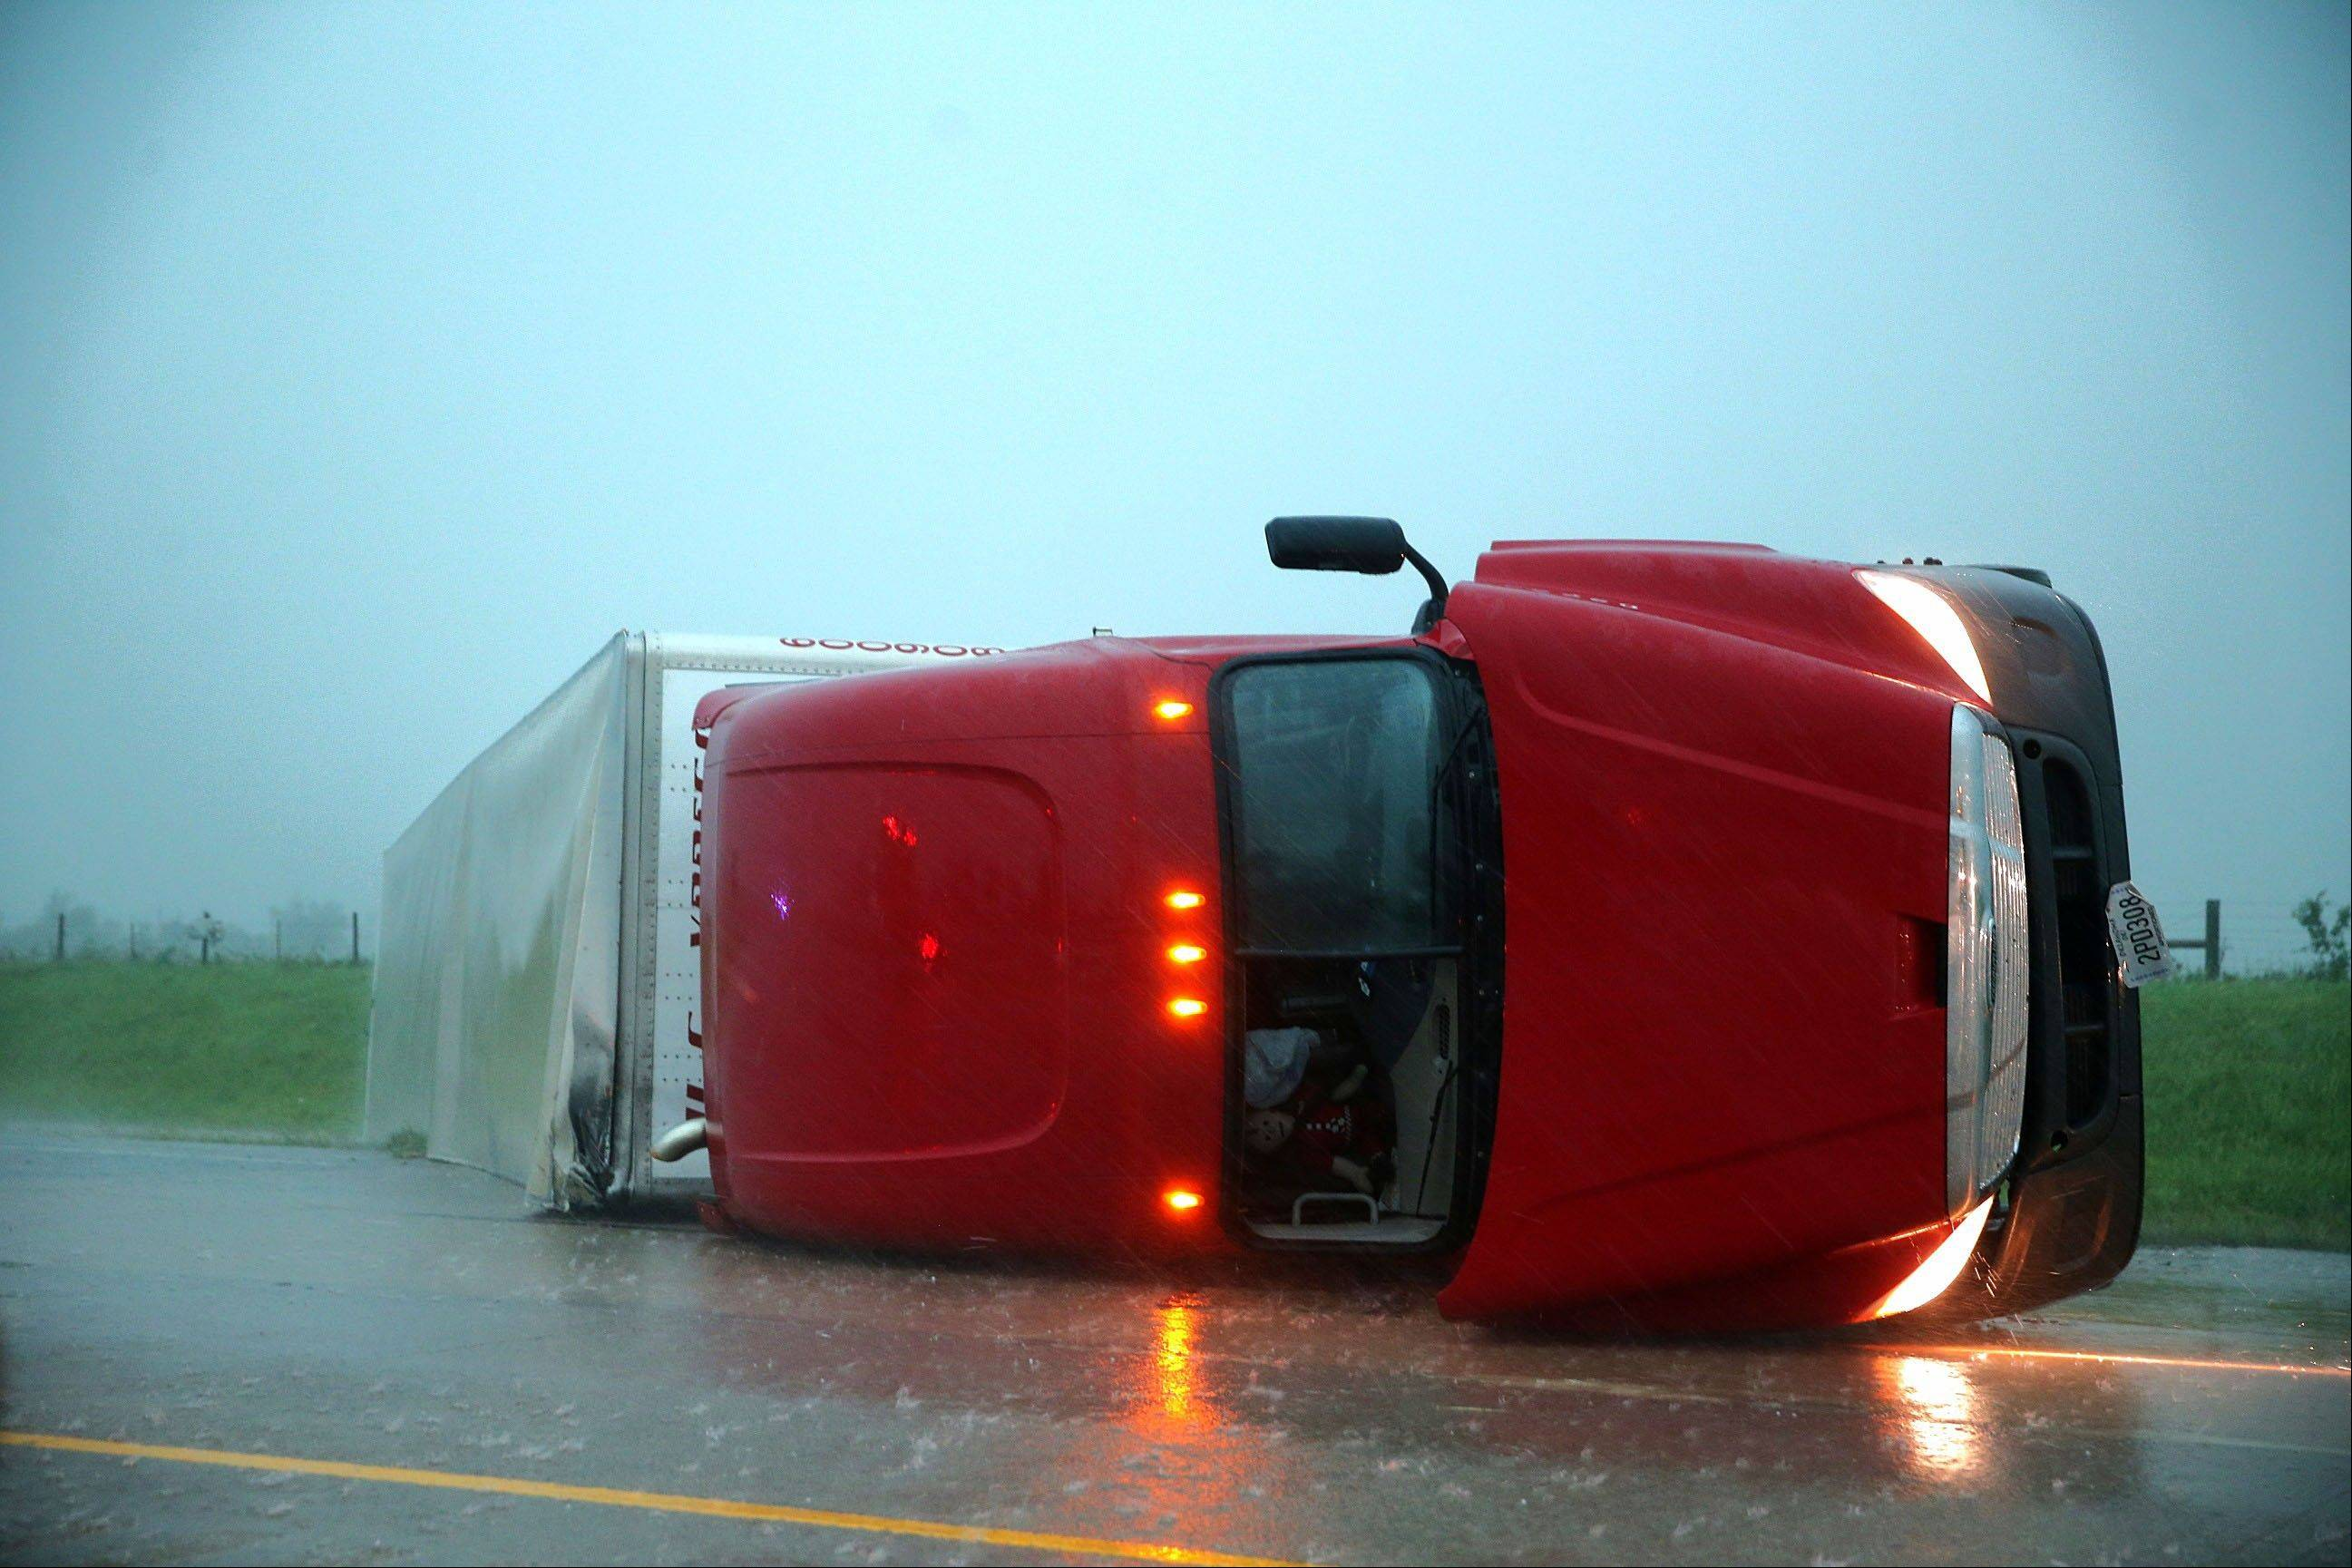 Associated Press An overturned semitrailer rests on its side Friday on the eastbound lanes of Interstate 40, just east of El Reno, Okla., after a tornado touched down.